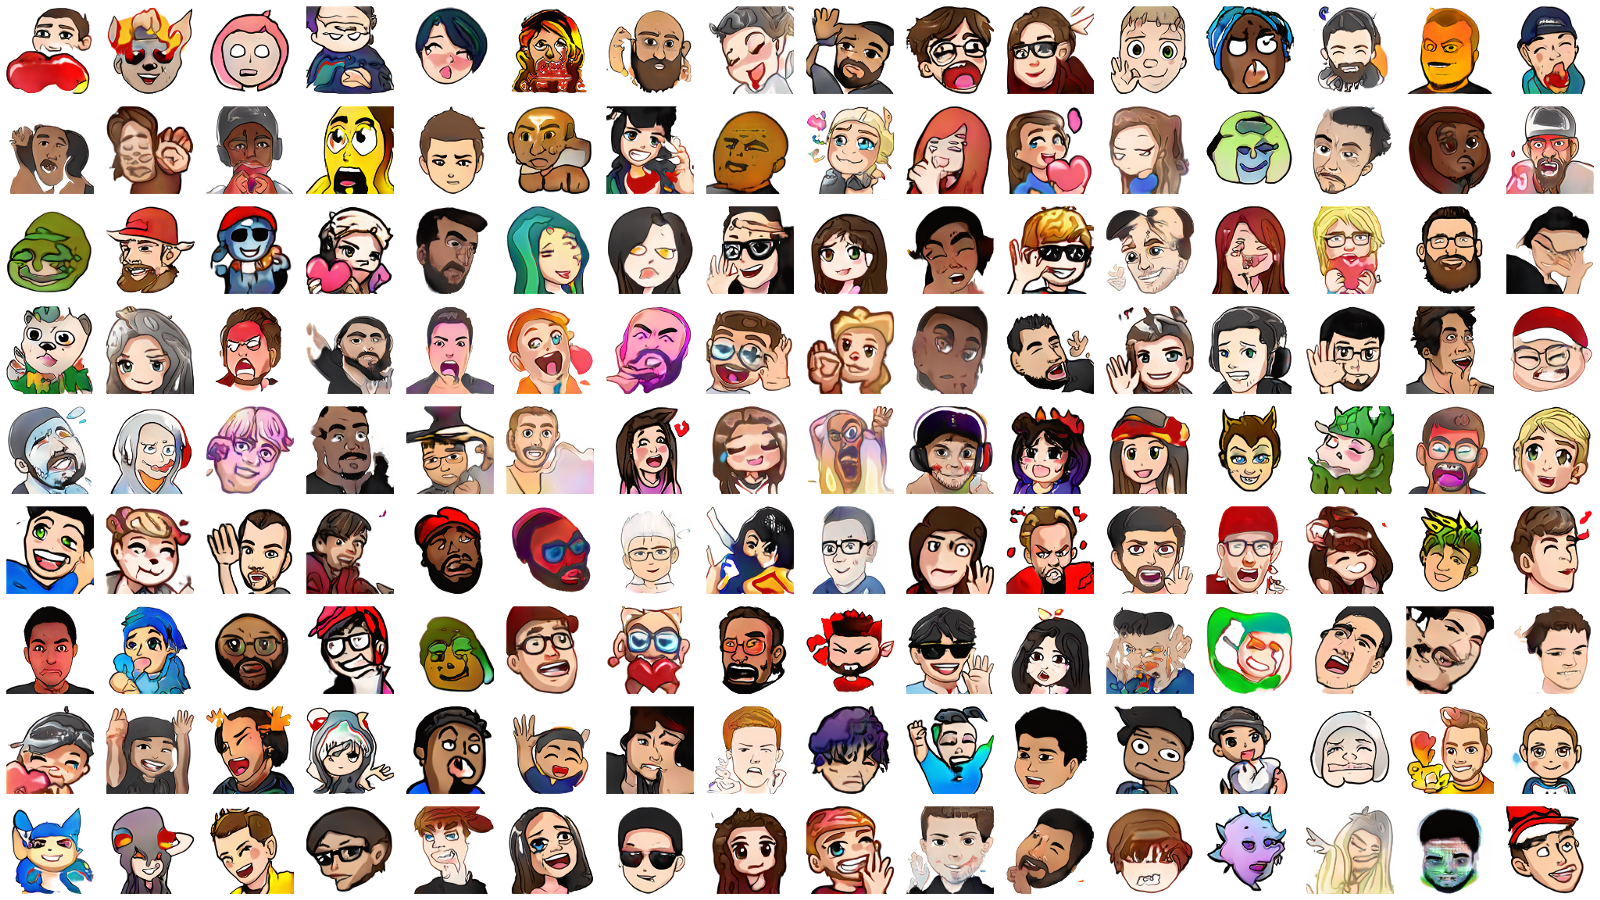 ThisEmoteDoesNotExist: Training a GAN for Twitch Emotes